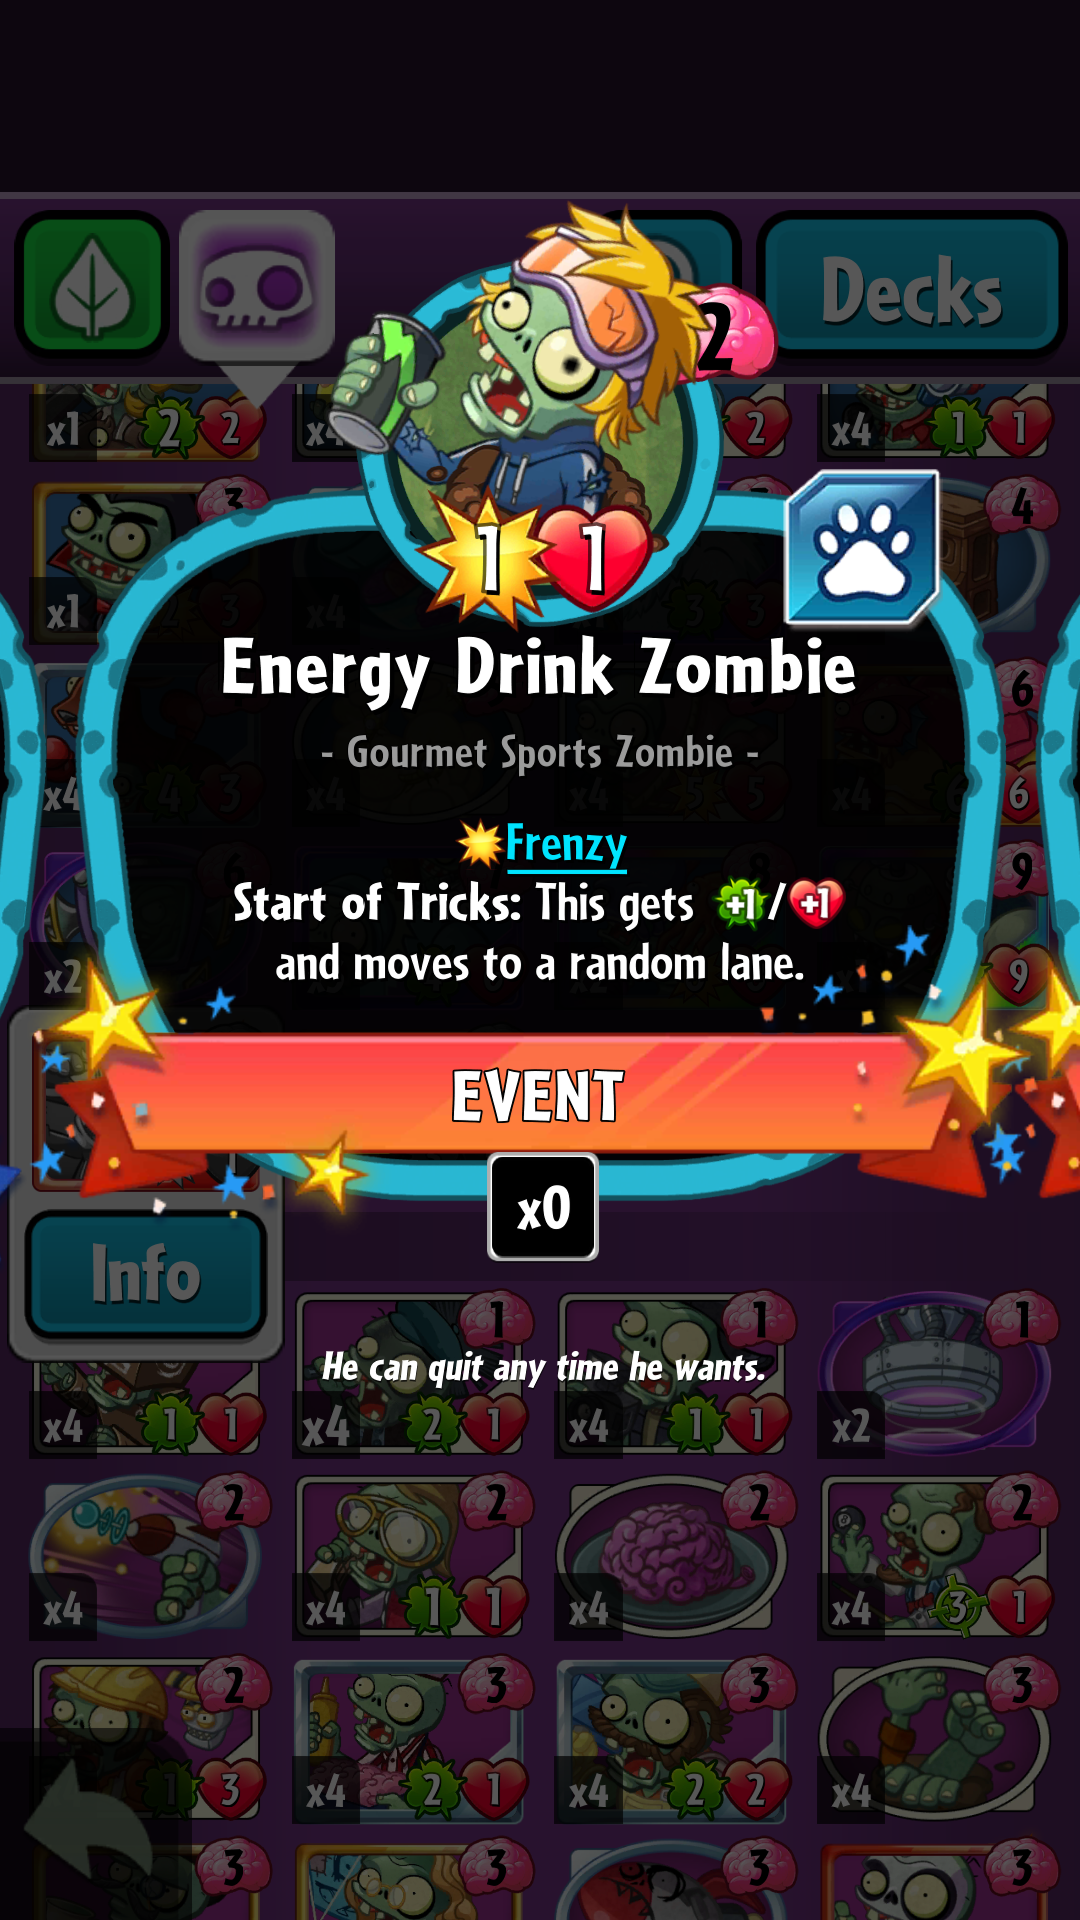 Energy Drink Zombie/Gallery